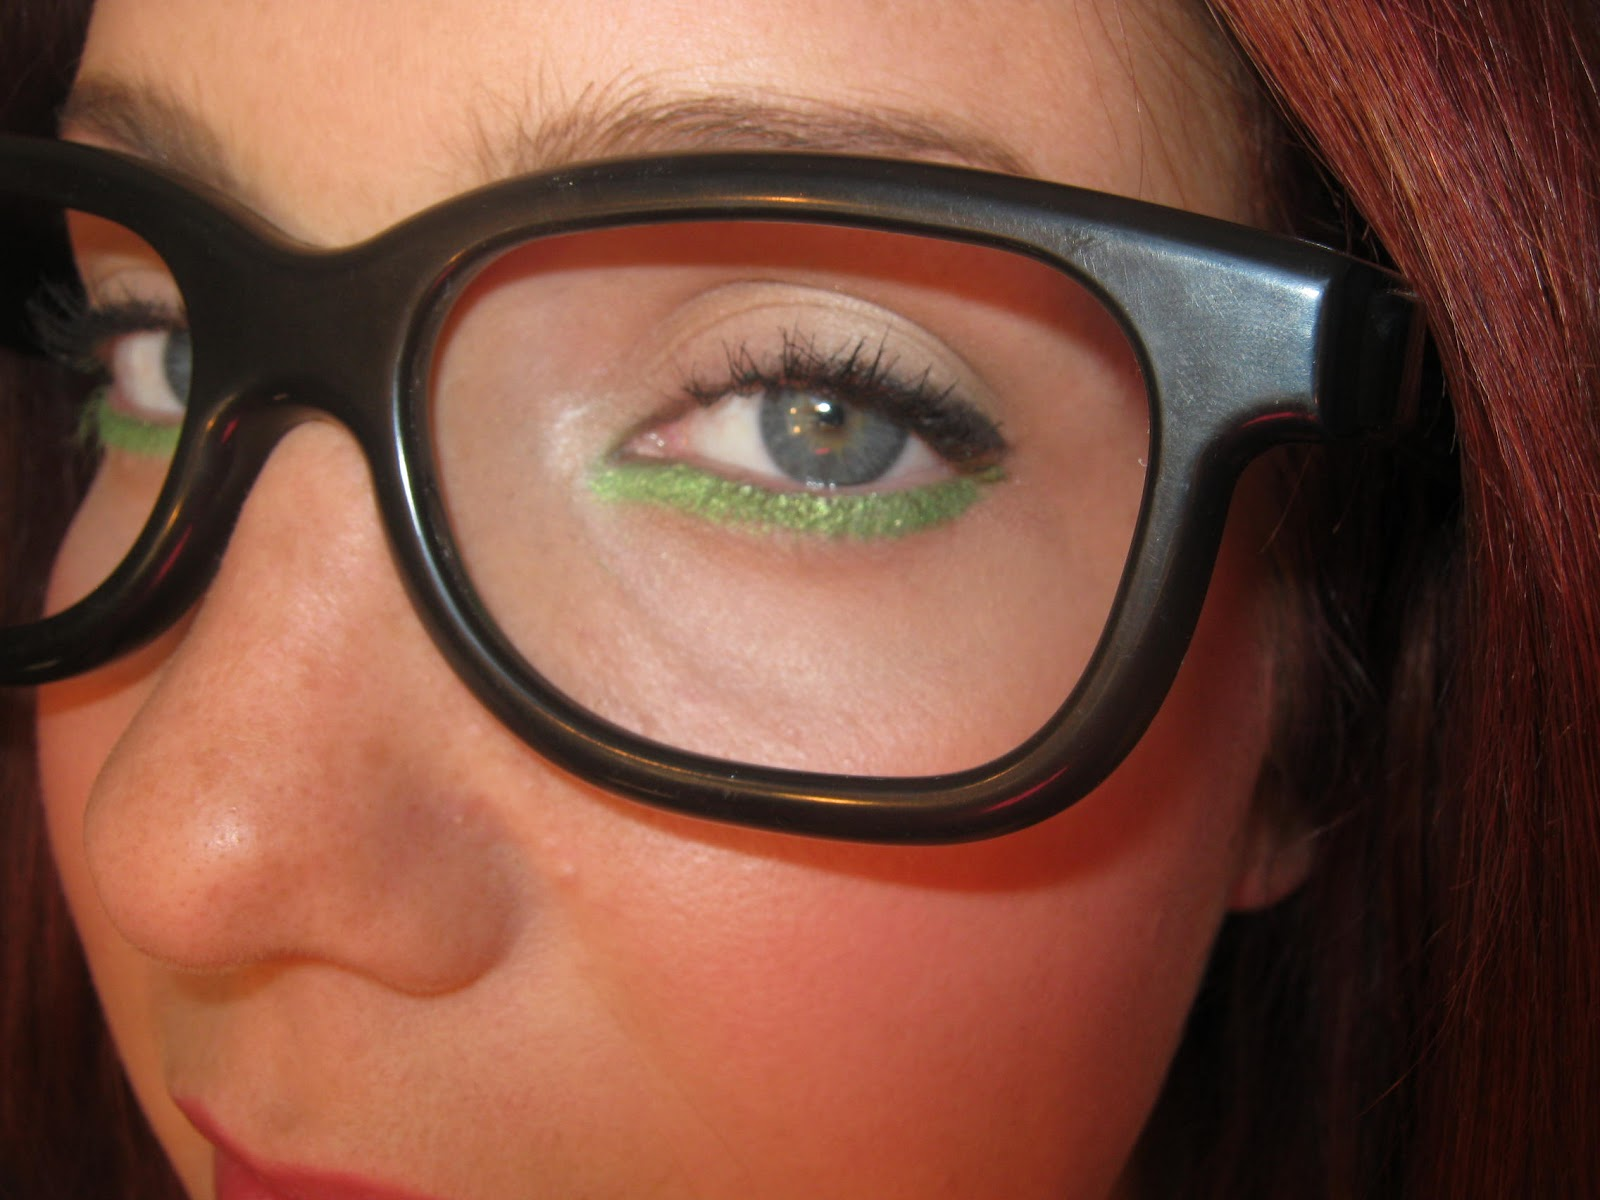 Jade Madden: Makeup for Glasses! Make your eyes the focus ...